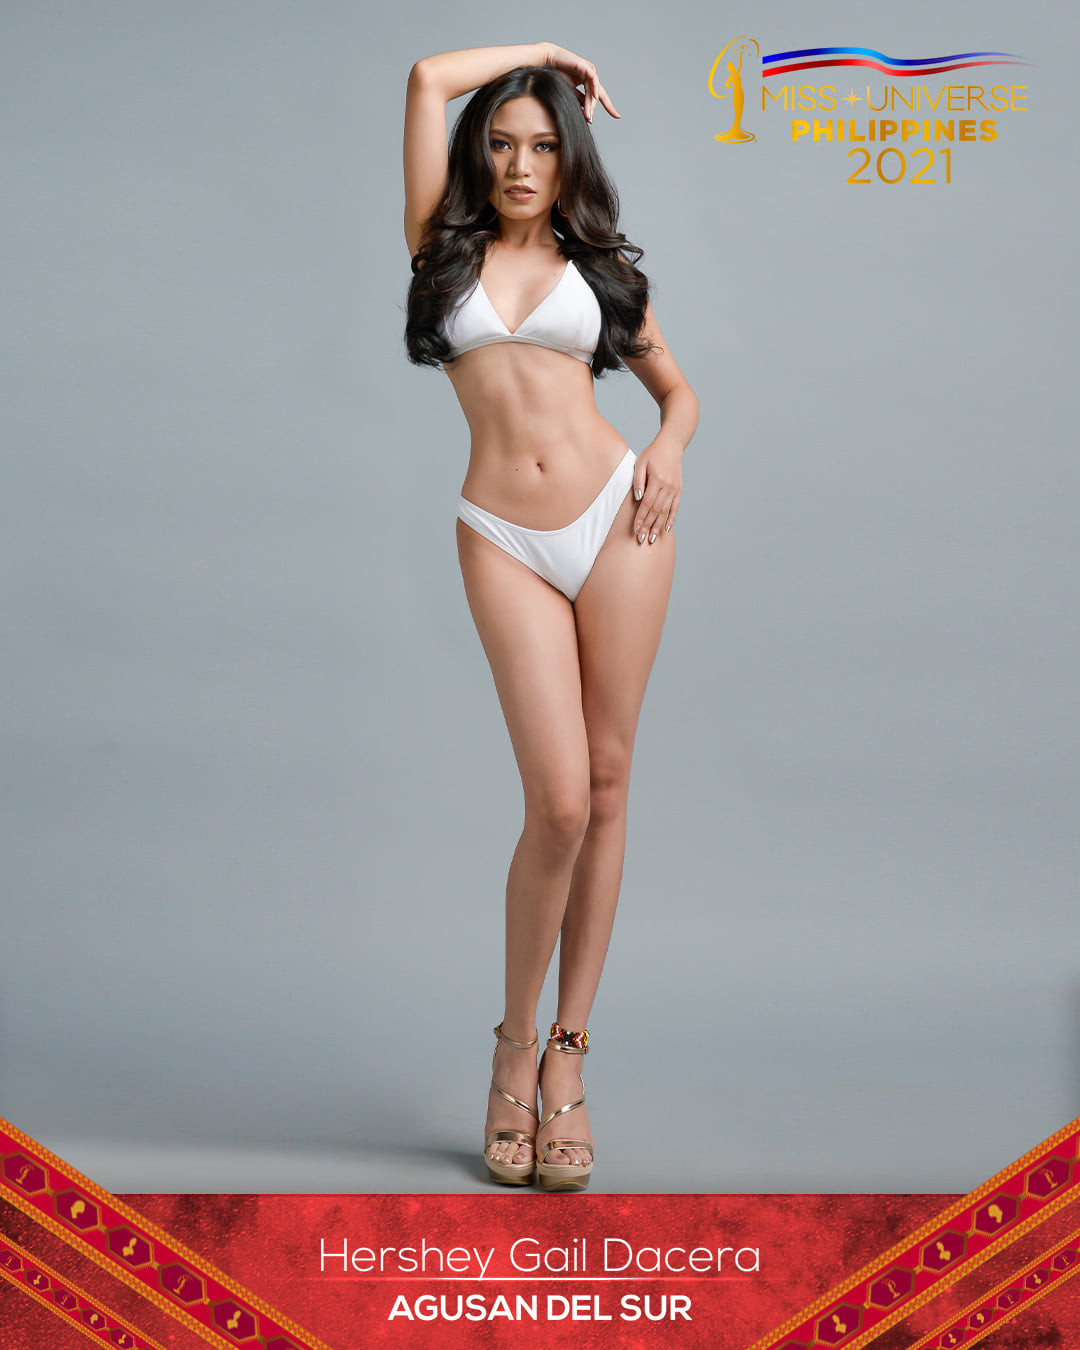 75 pre-candidatas a miss universe philippines 2021. RTdJ49